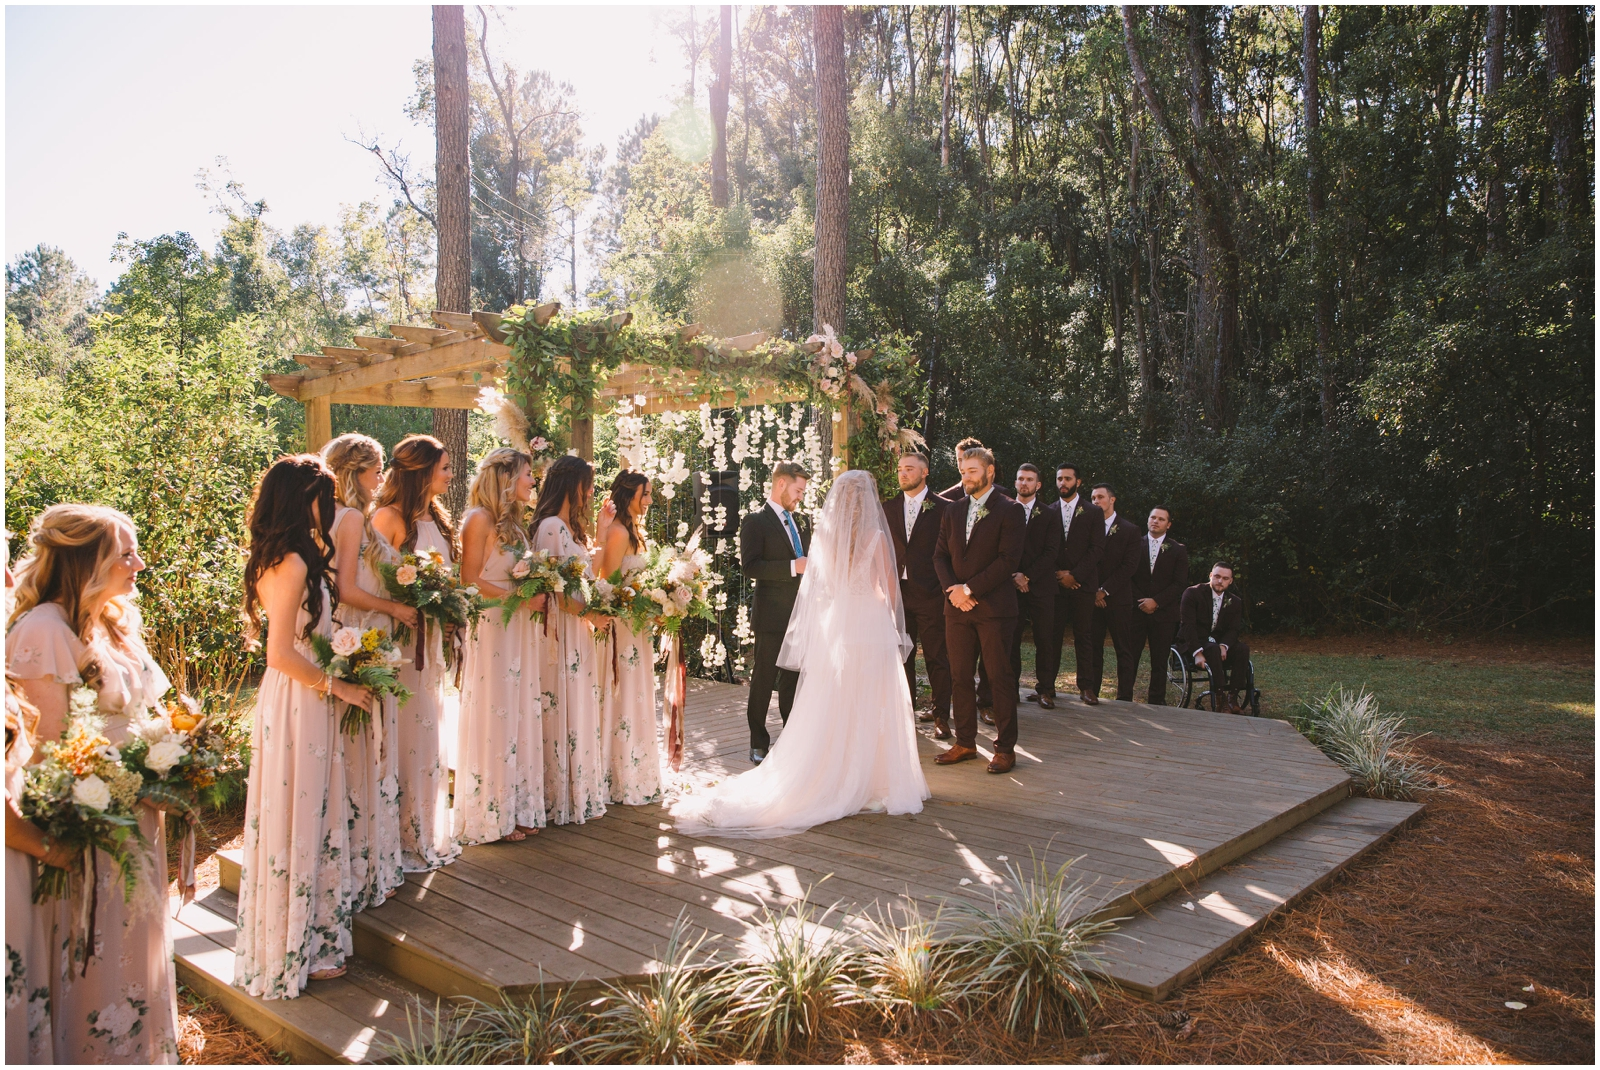 Outdoor wedding ceremony at The Glen Venue